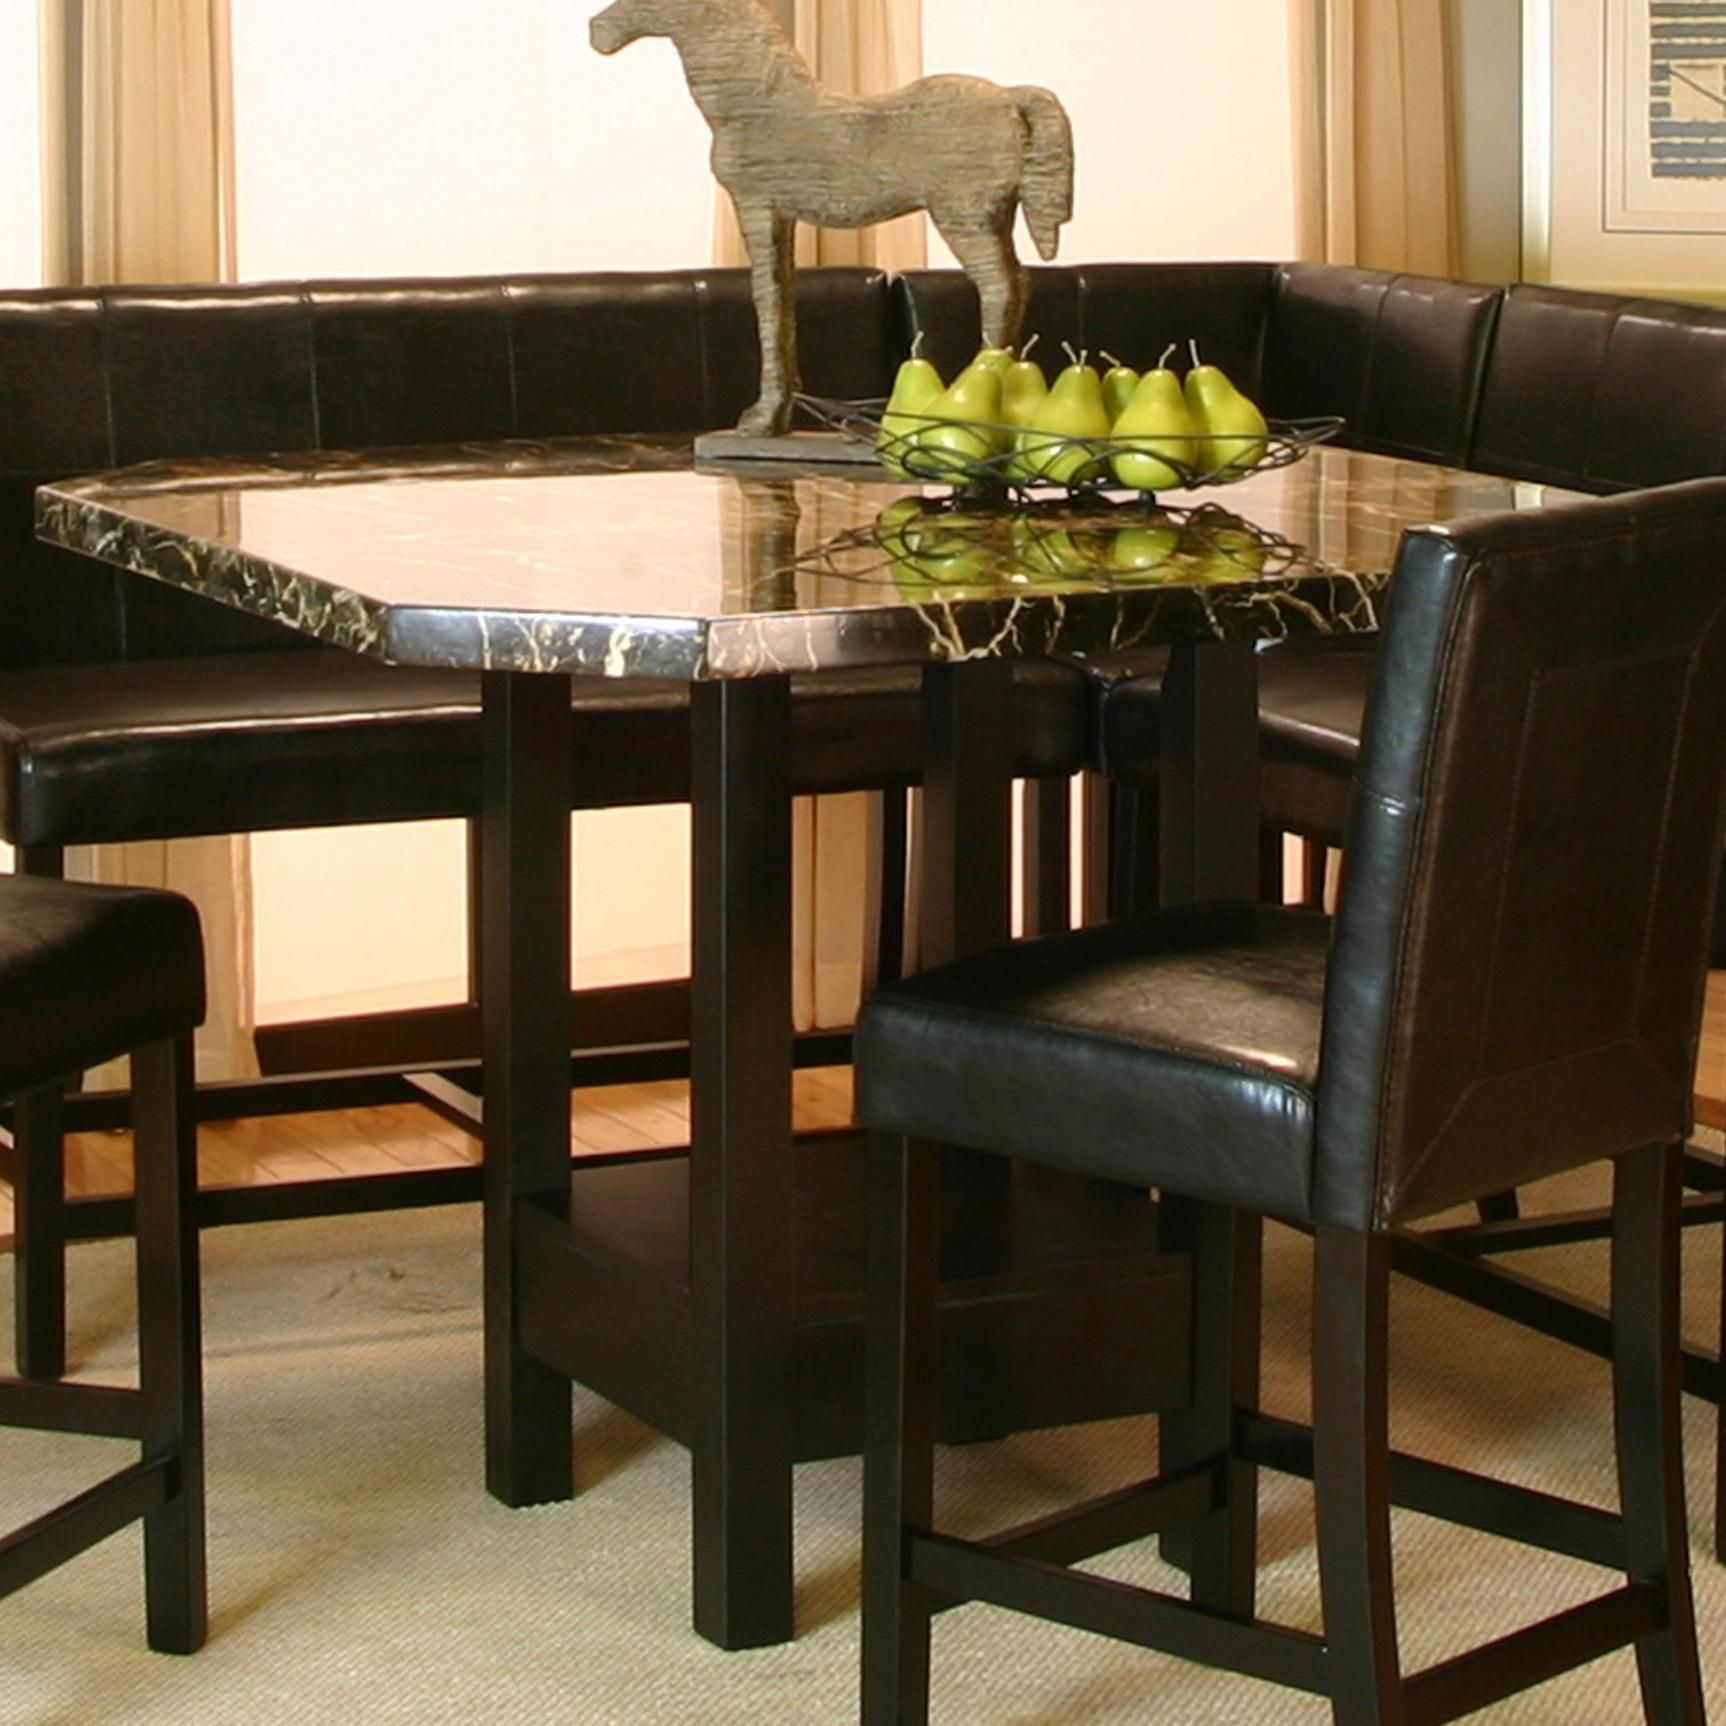 Chatham Square Clipped Corner Pub Table W Faux Marble Top By Cramco Inc At Darvin Furniture